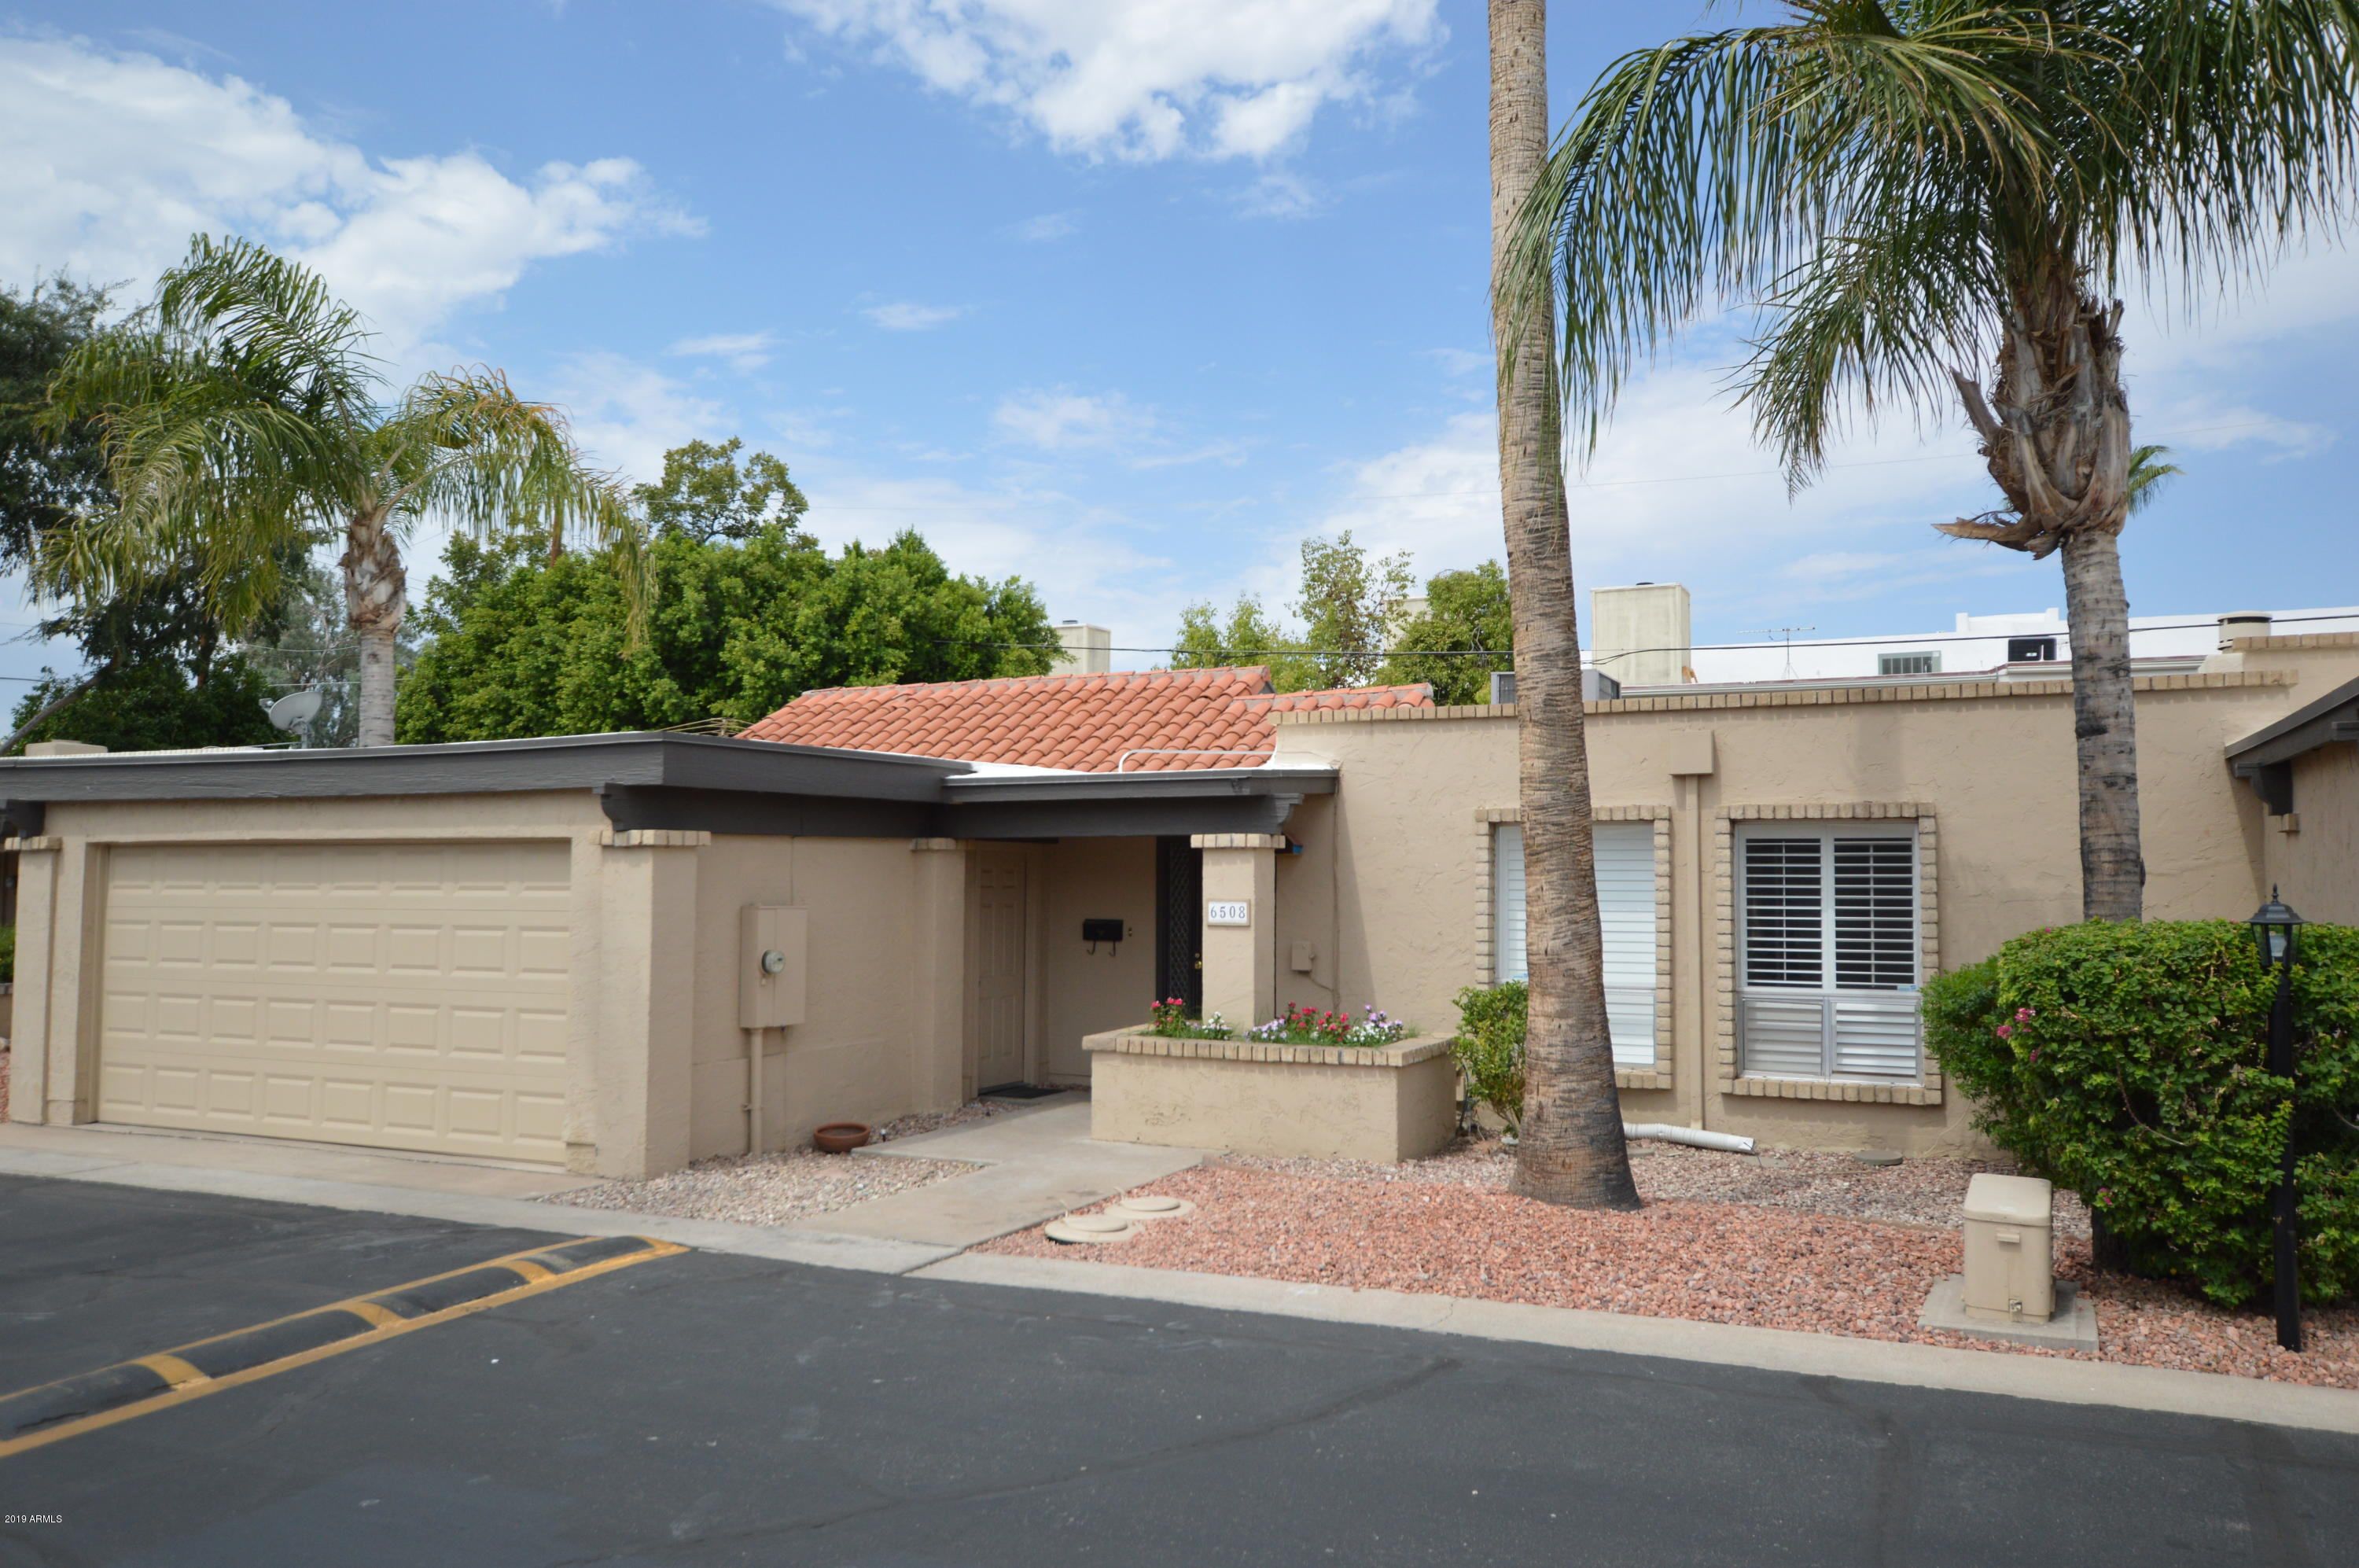 Photo of 6508 N VILLA MANANA Drive, Phoenix, AZ 85014